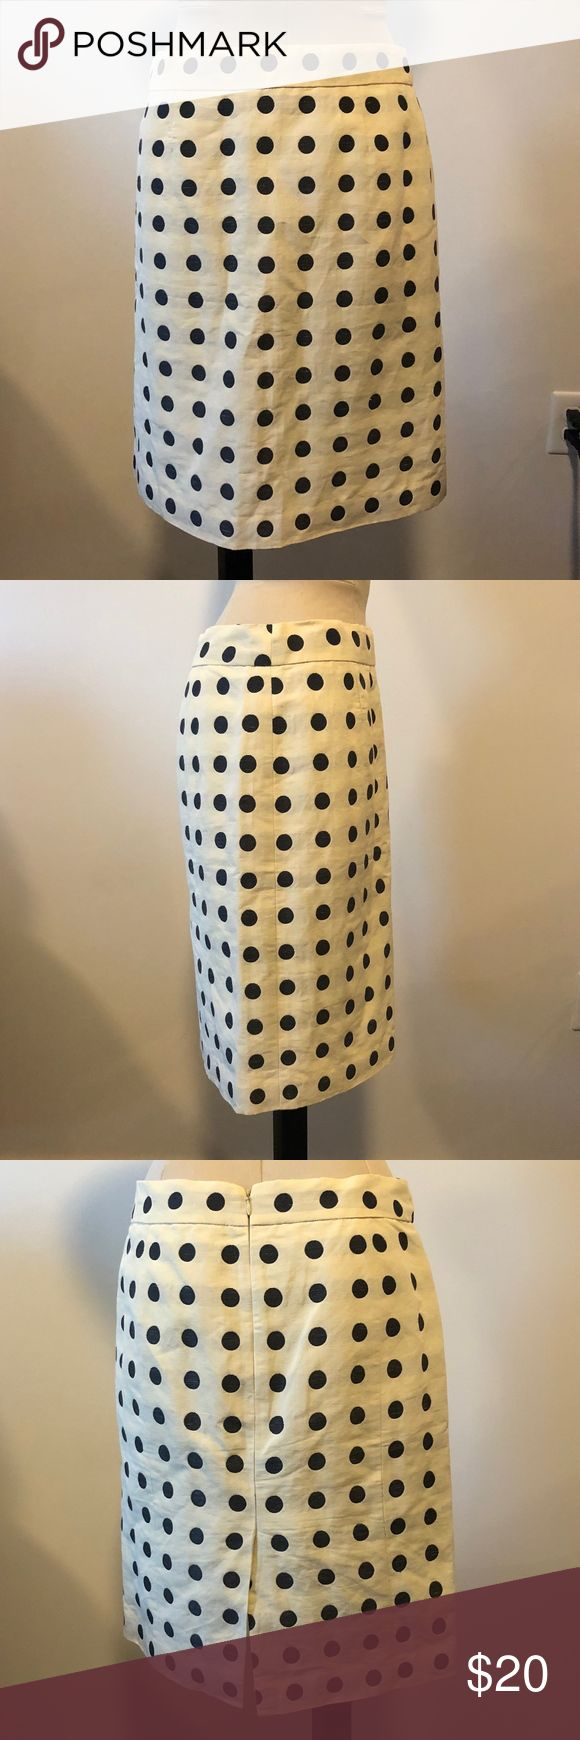 """J. Crew Polk a dot Ivory Navy Pencil Skirt 8 work J. Crew Polk a dot off white navy skirt. Perfect for work to bring a pop to your outfit. Size 8. Approx 22"""" in length. J. Crew Skirts A-Line or Full"""